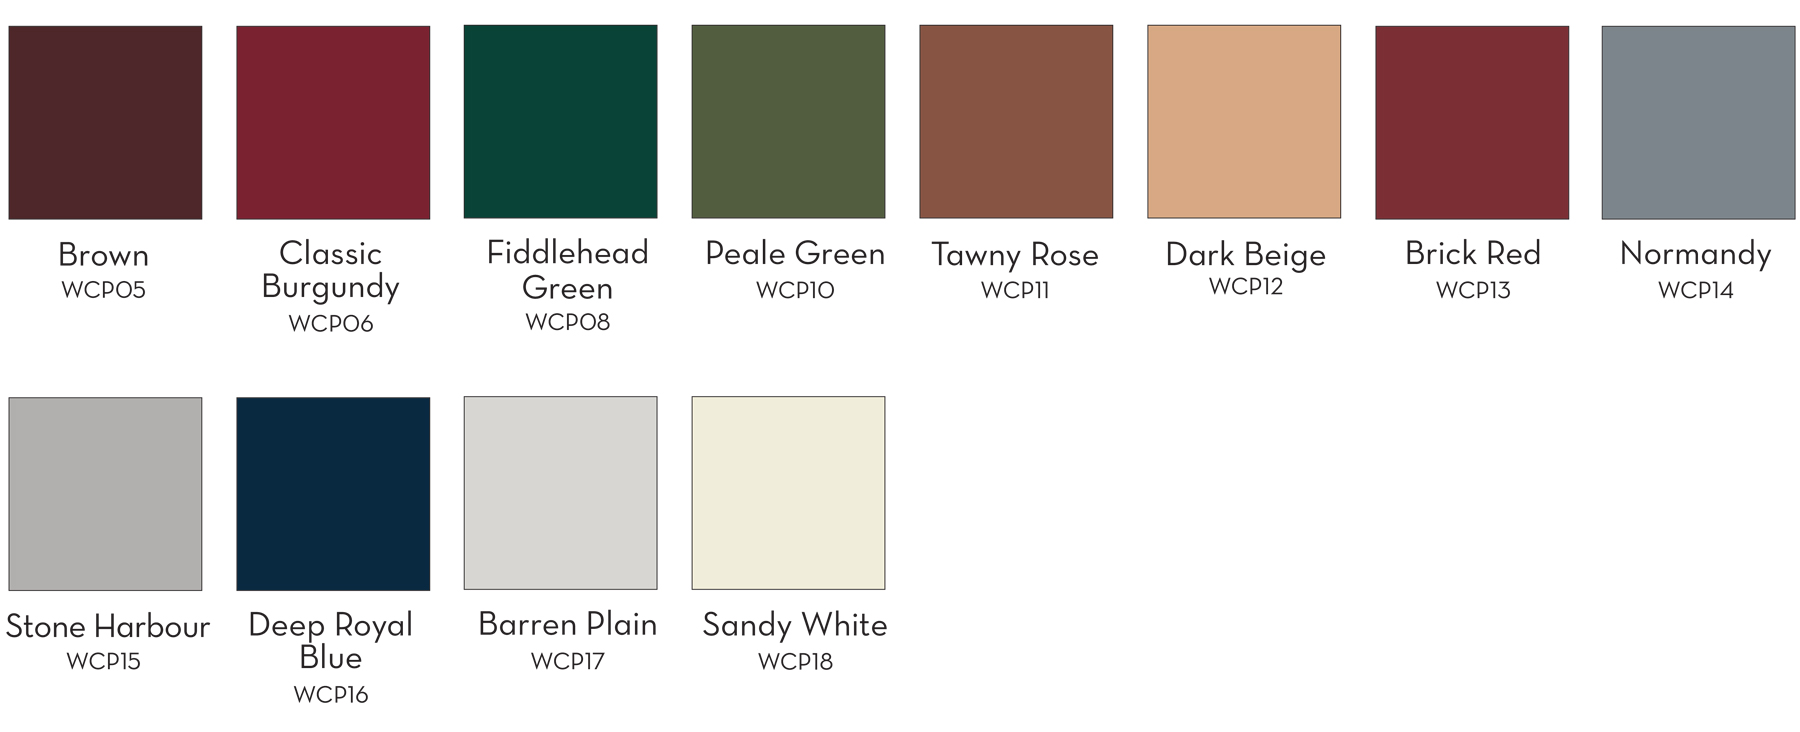 Product Colors - Paint Options